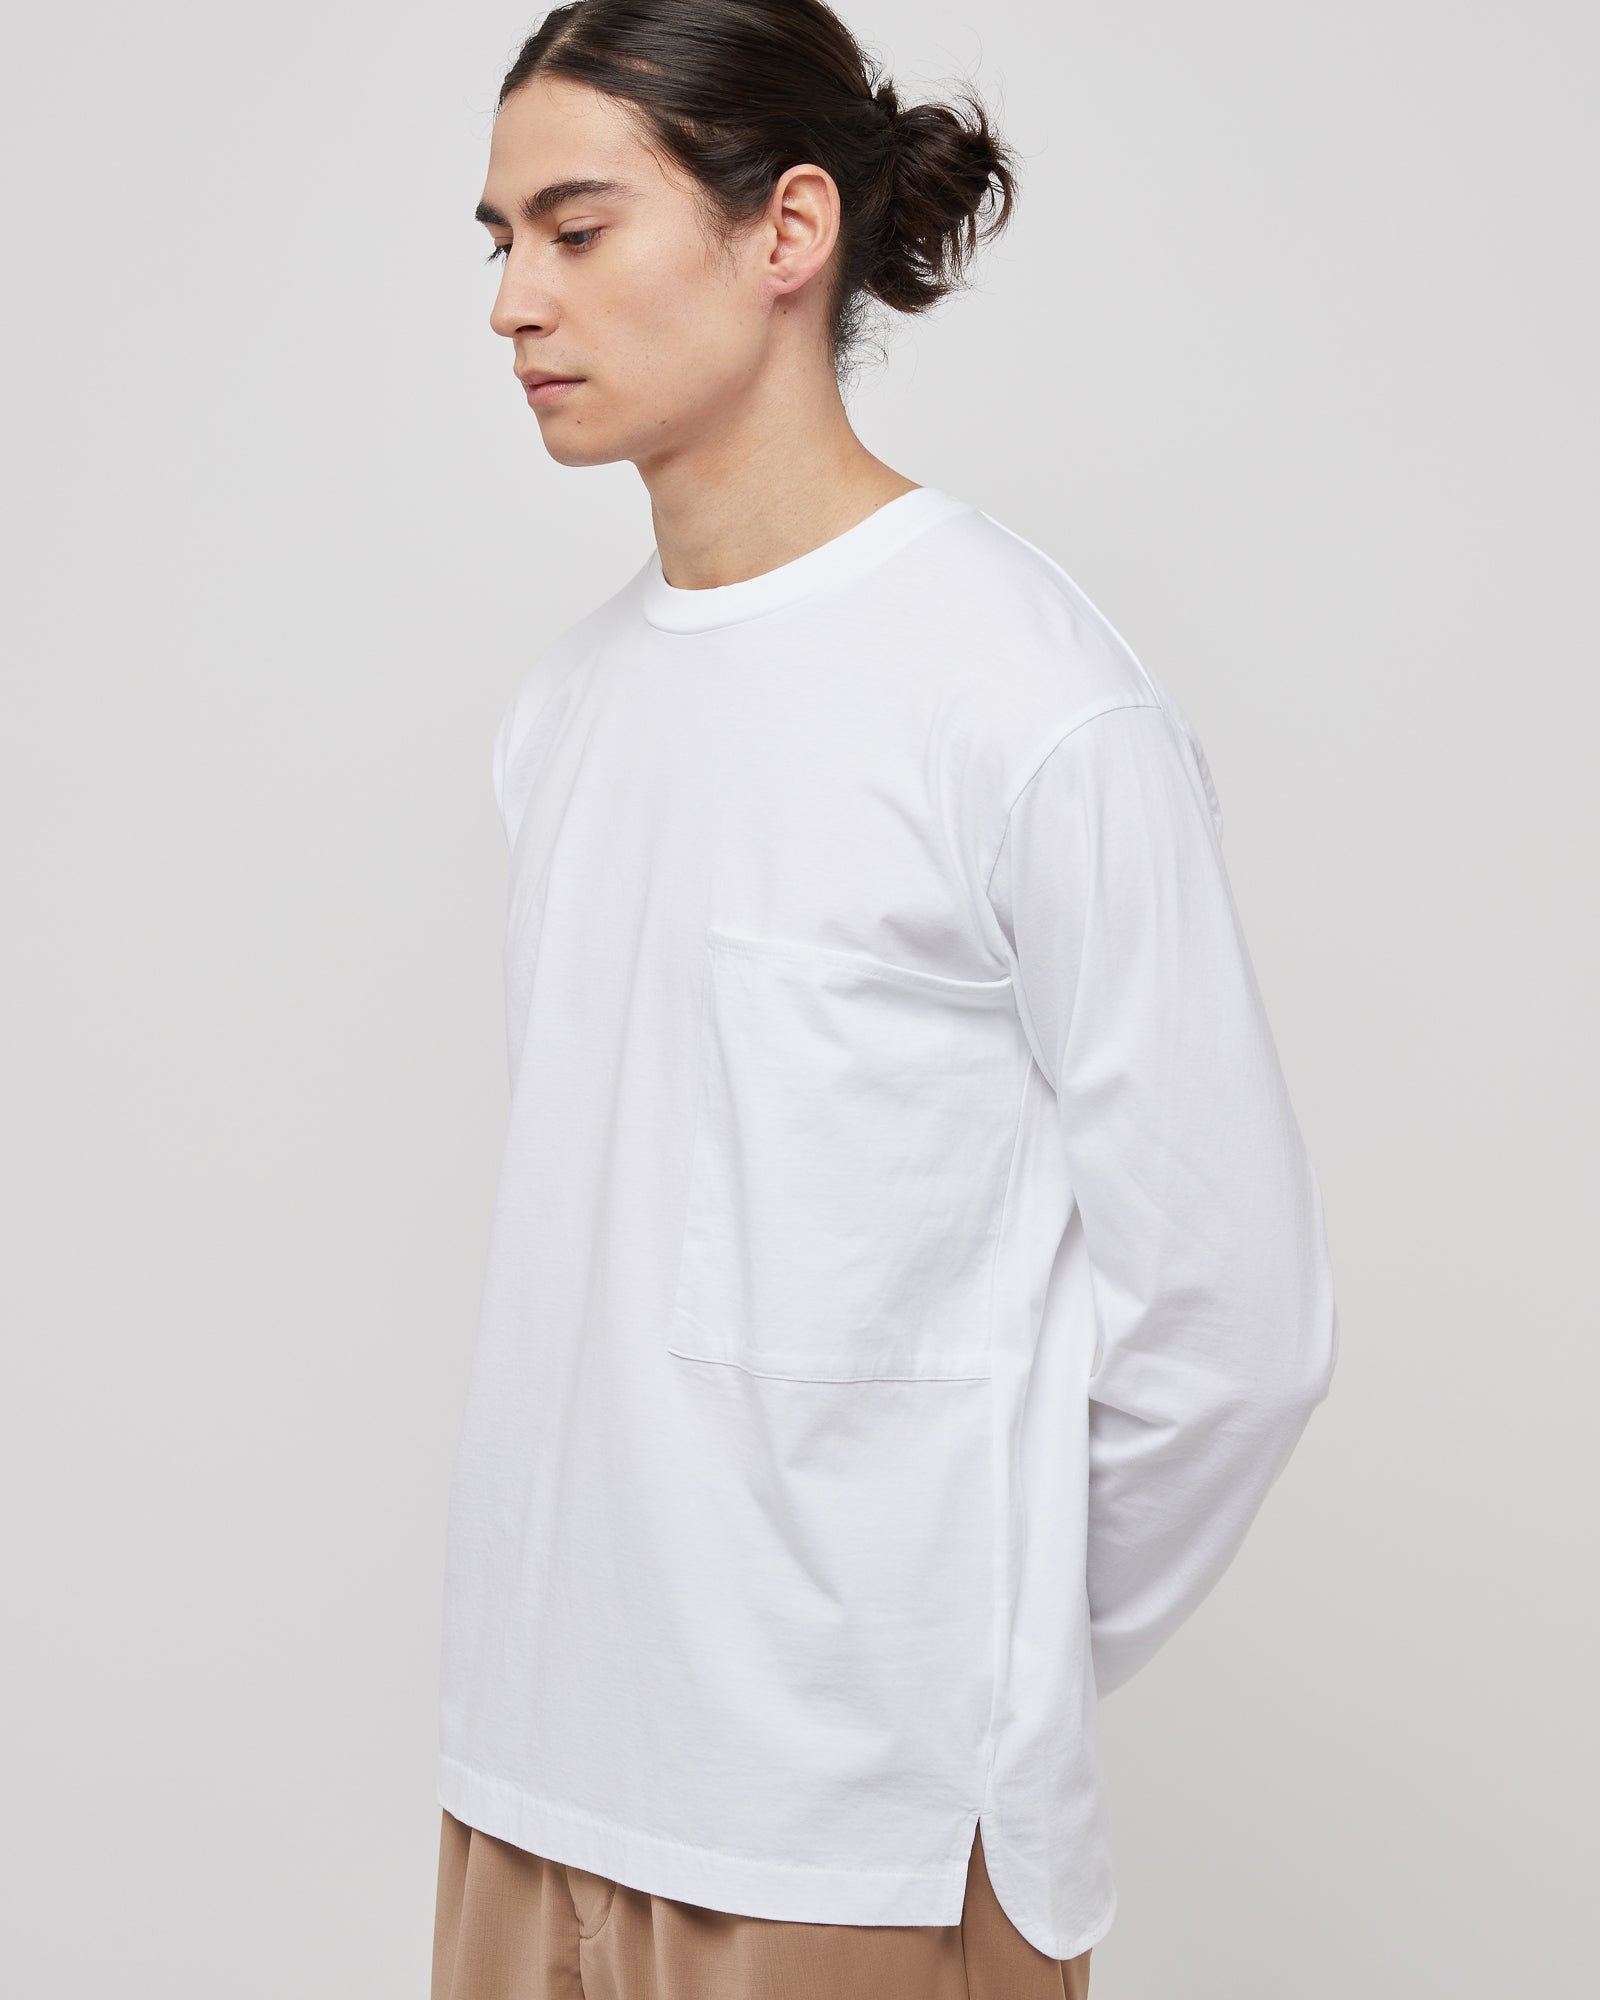 L/S Large Pocket Shirt in Off White